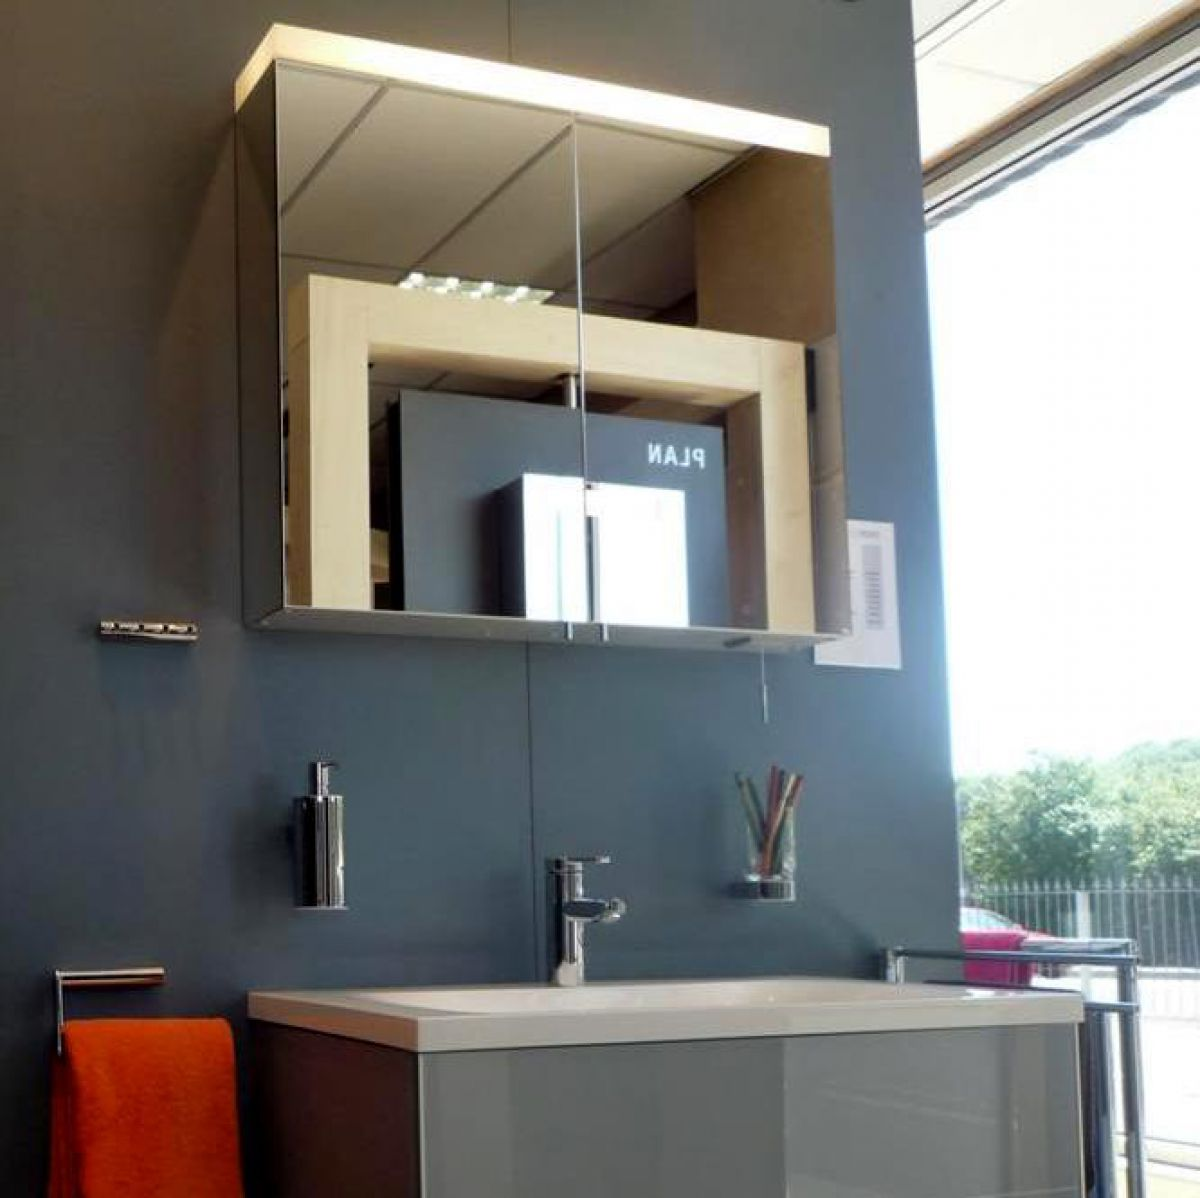 keuco royal reflex mirror cabinet uk bathrooms. Black Bedroom Furniture Sets. Home Design Ideas